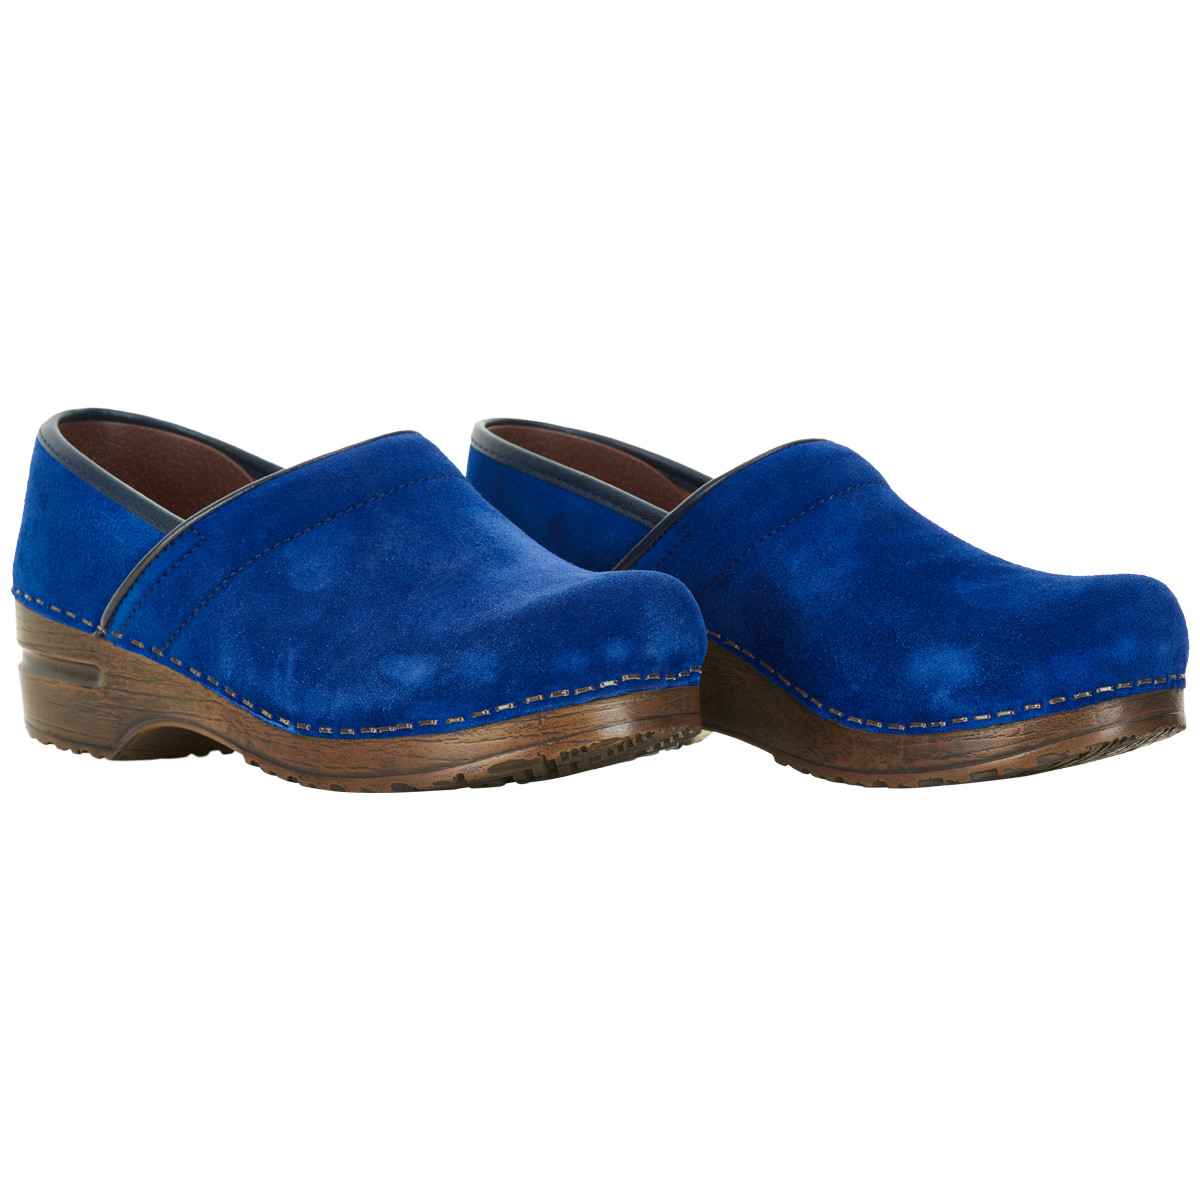 SANITA ANGELA CLOGS 459136 35